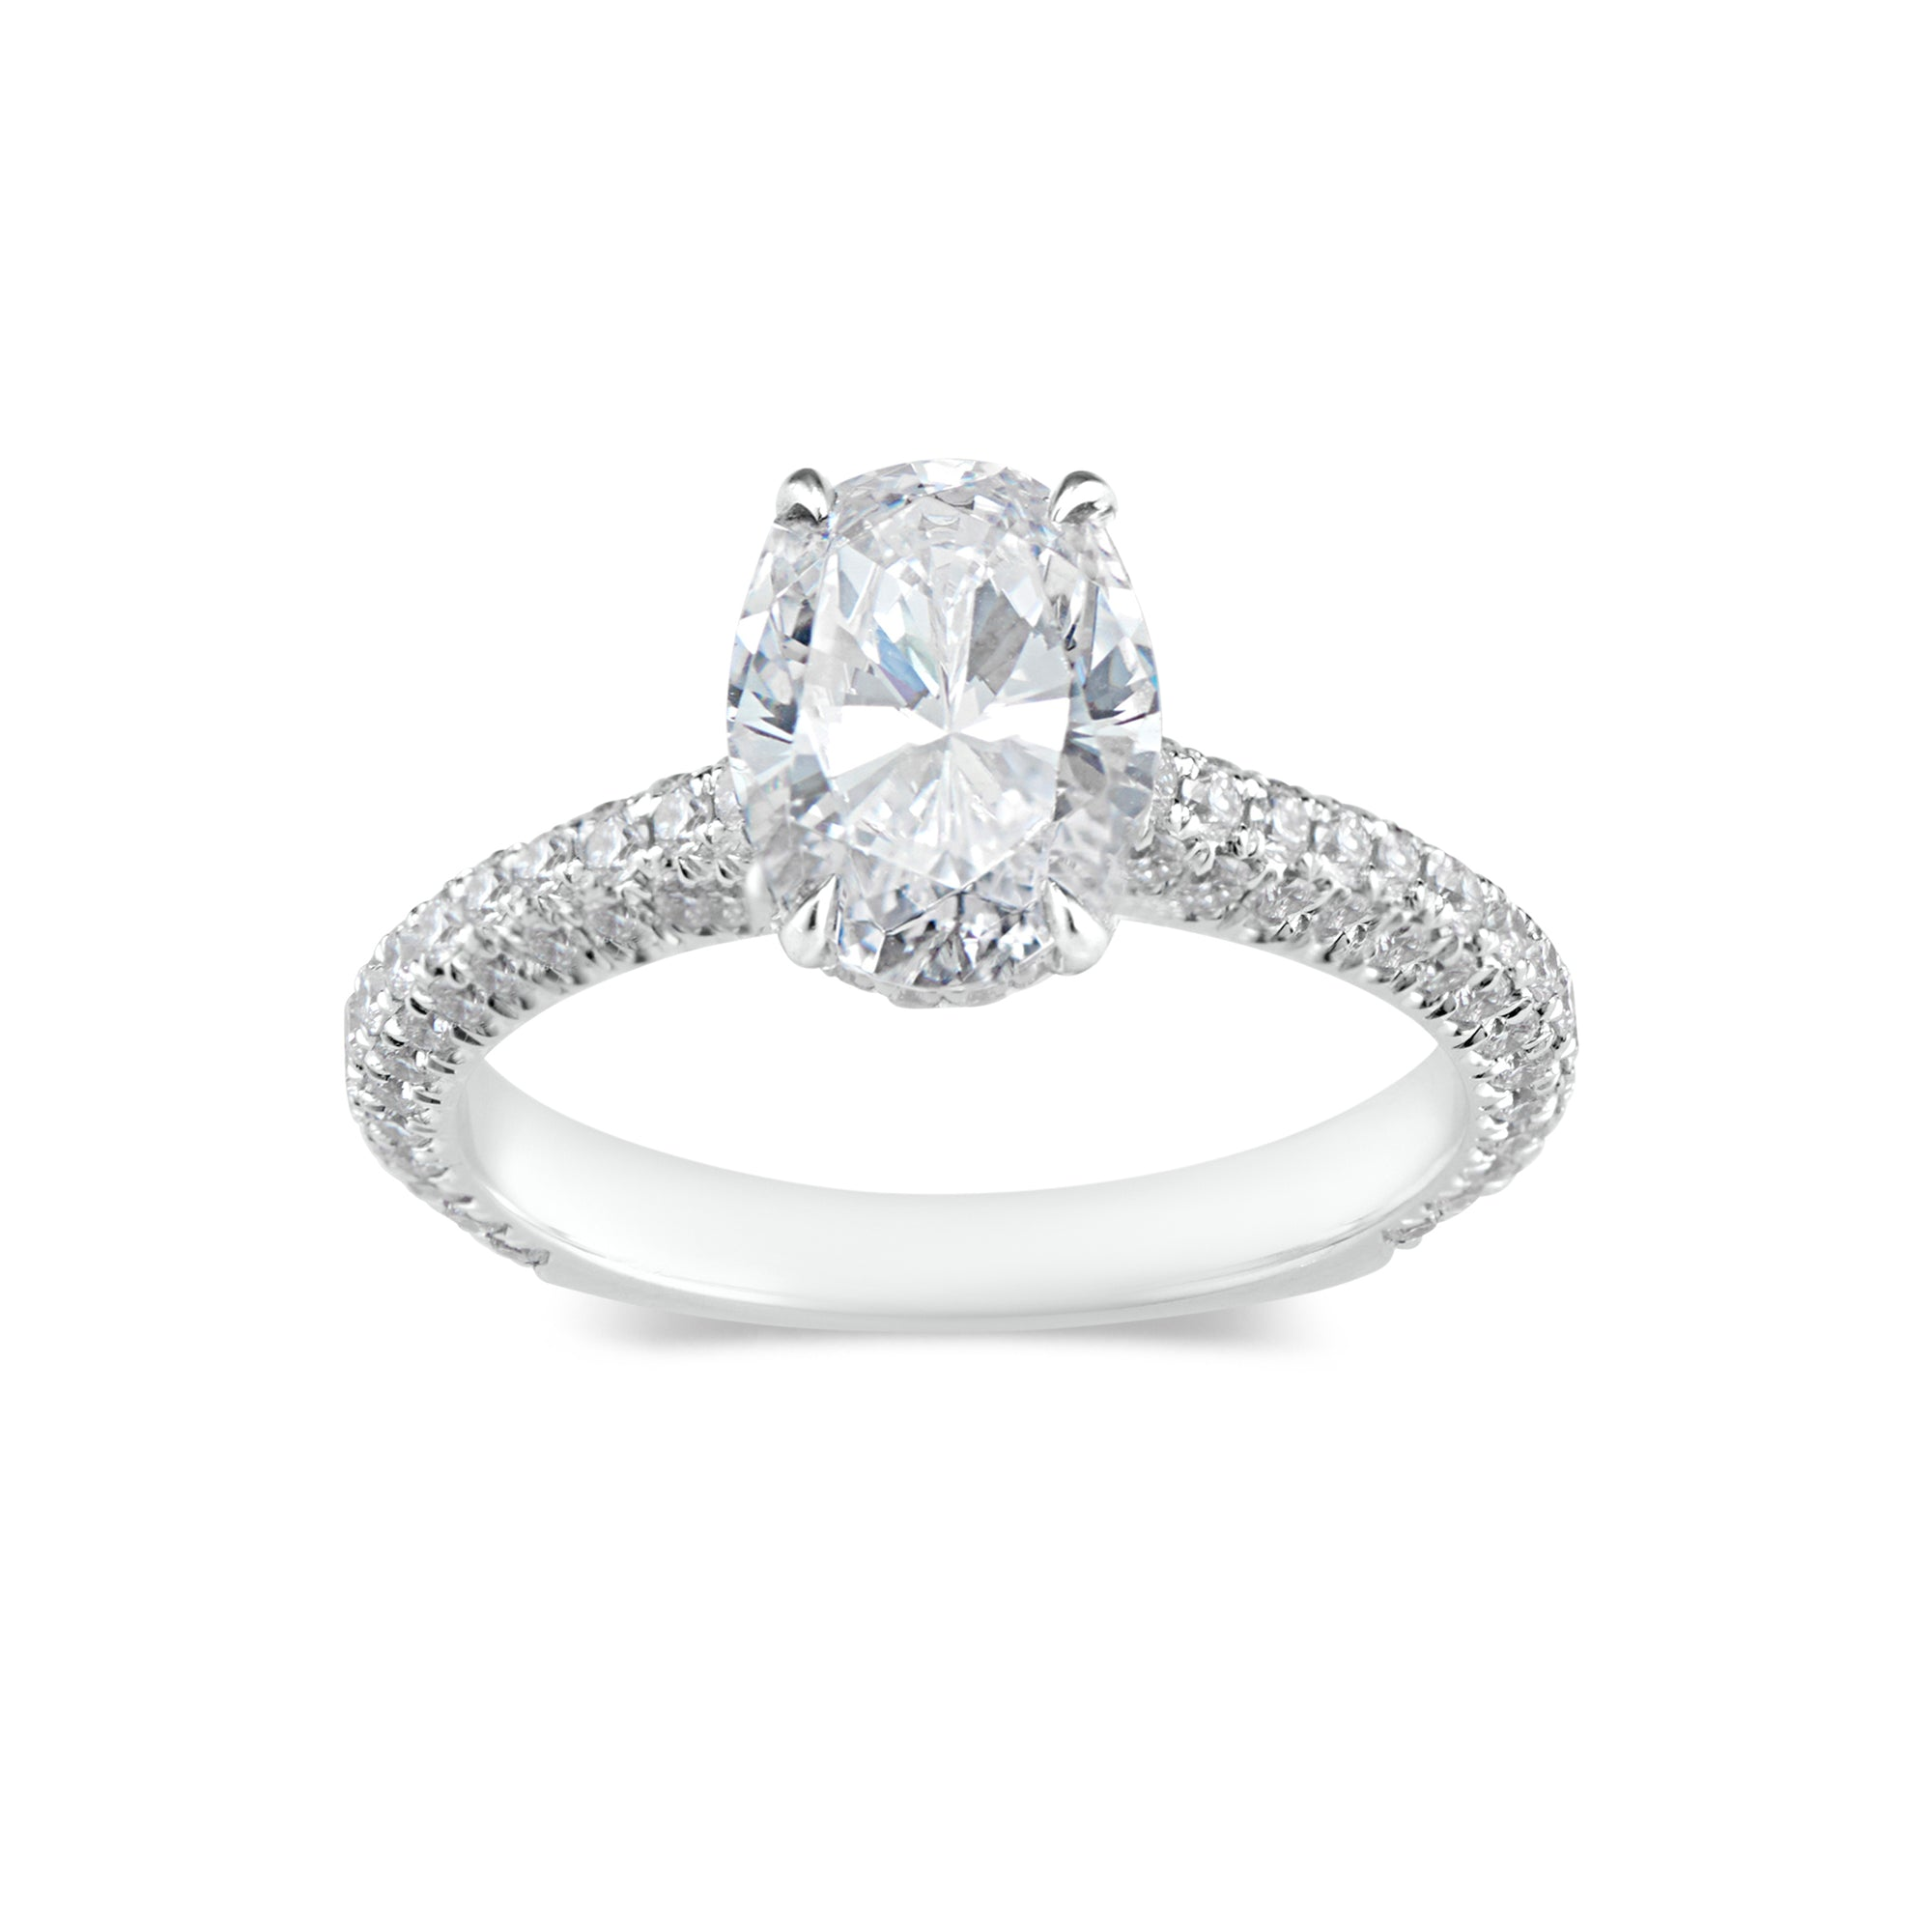 Oval Diamond Engagement Ring with Pave Diamond Shank